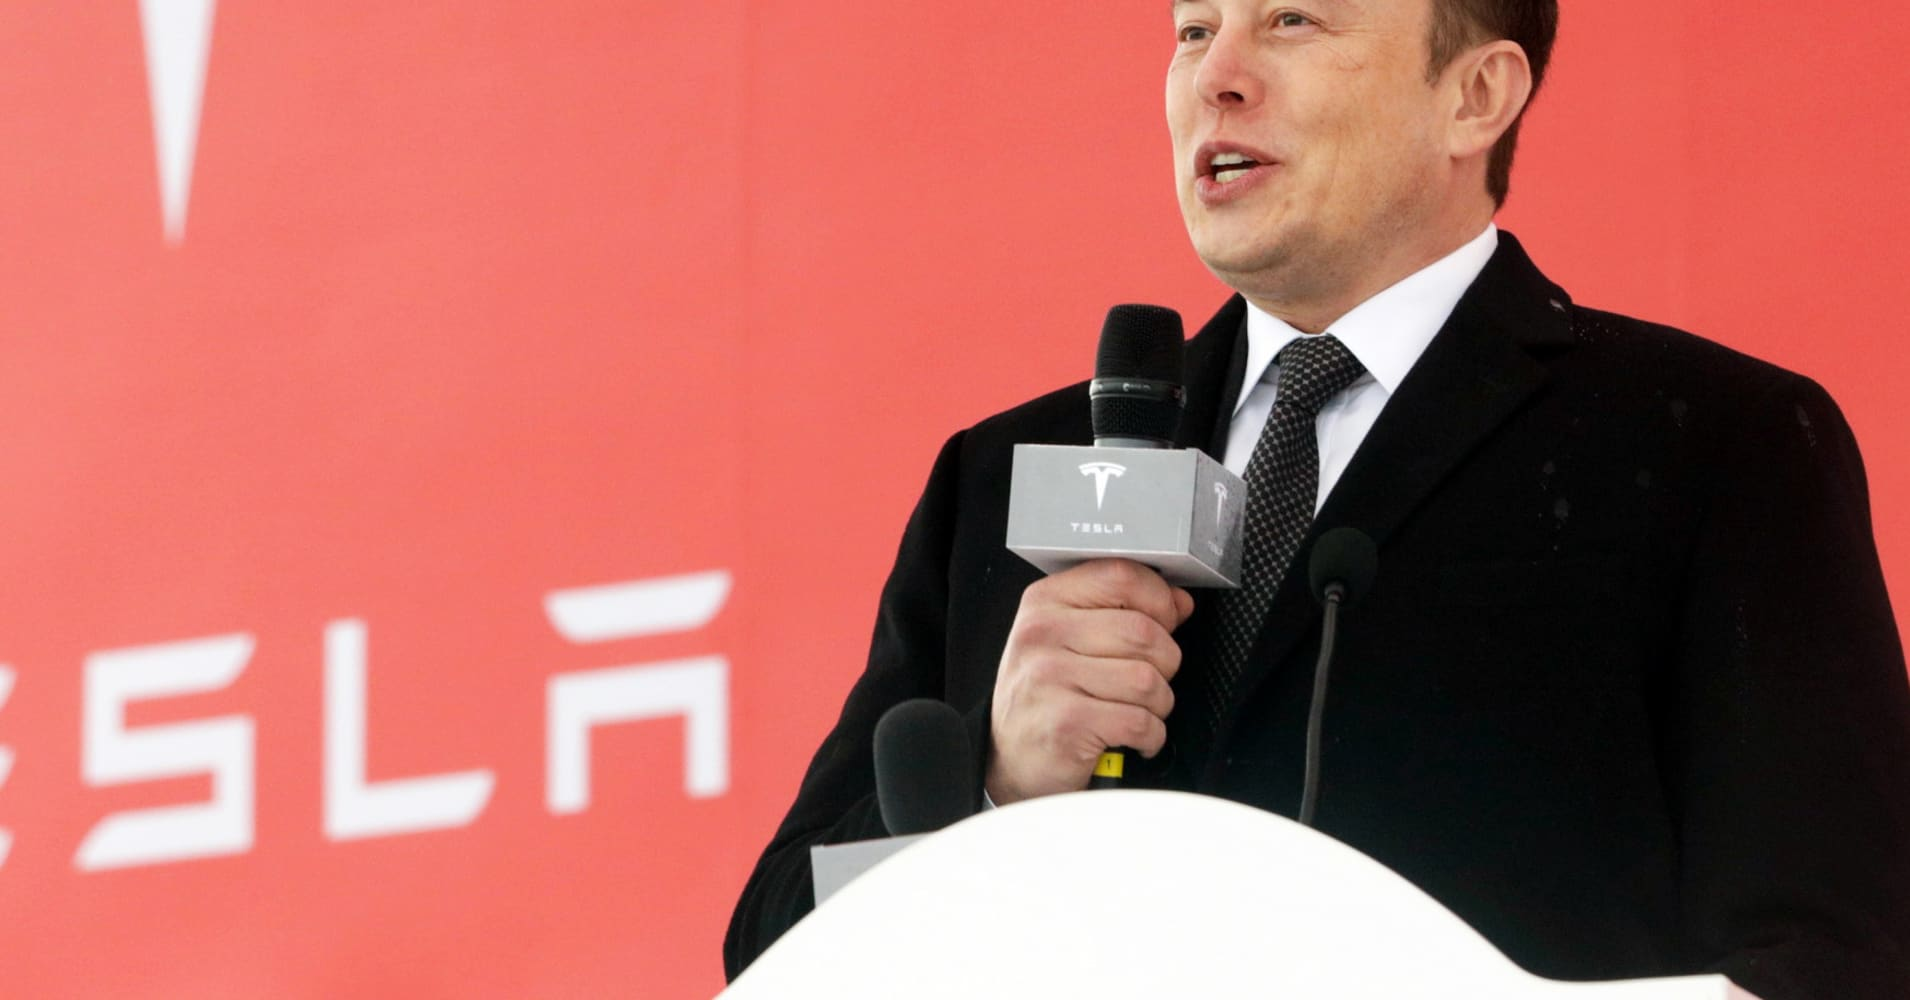 Elon Musk Sees 'Pretty Nutty' Demand for Tesla in 2019 even if There's a Global Recession